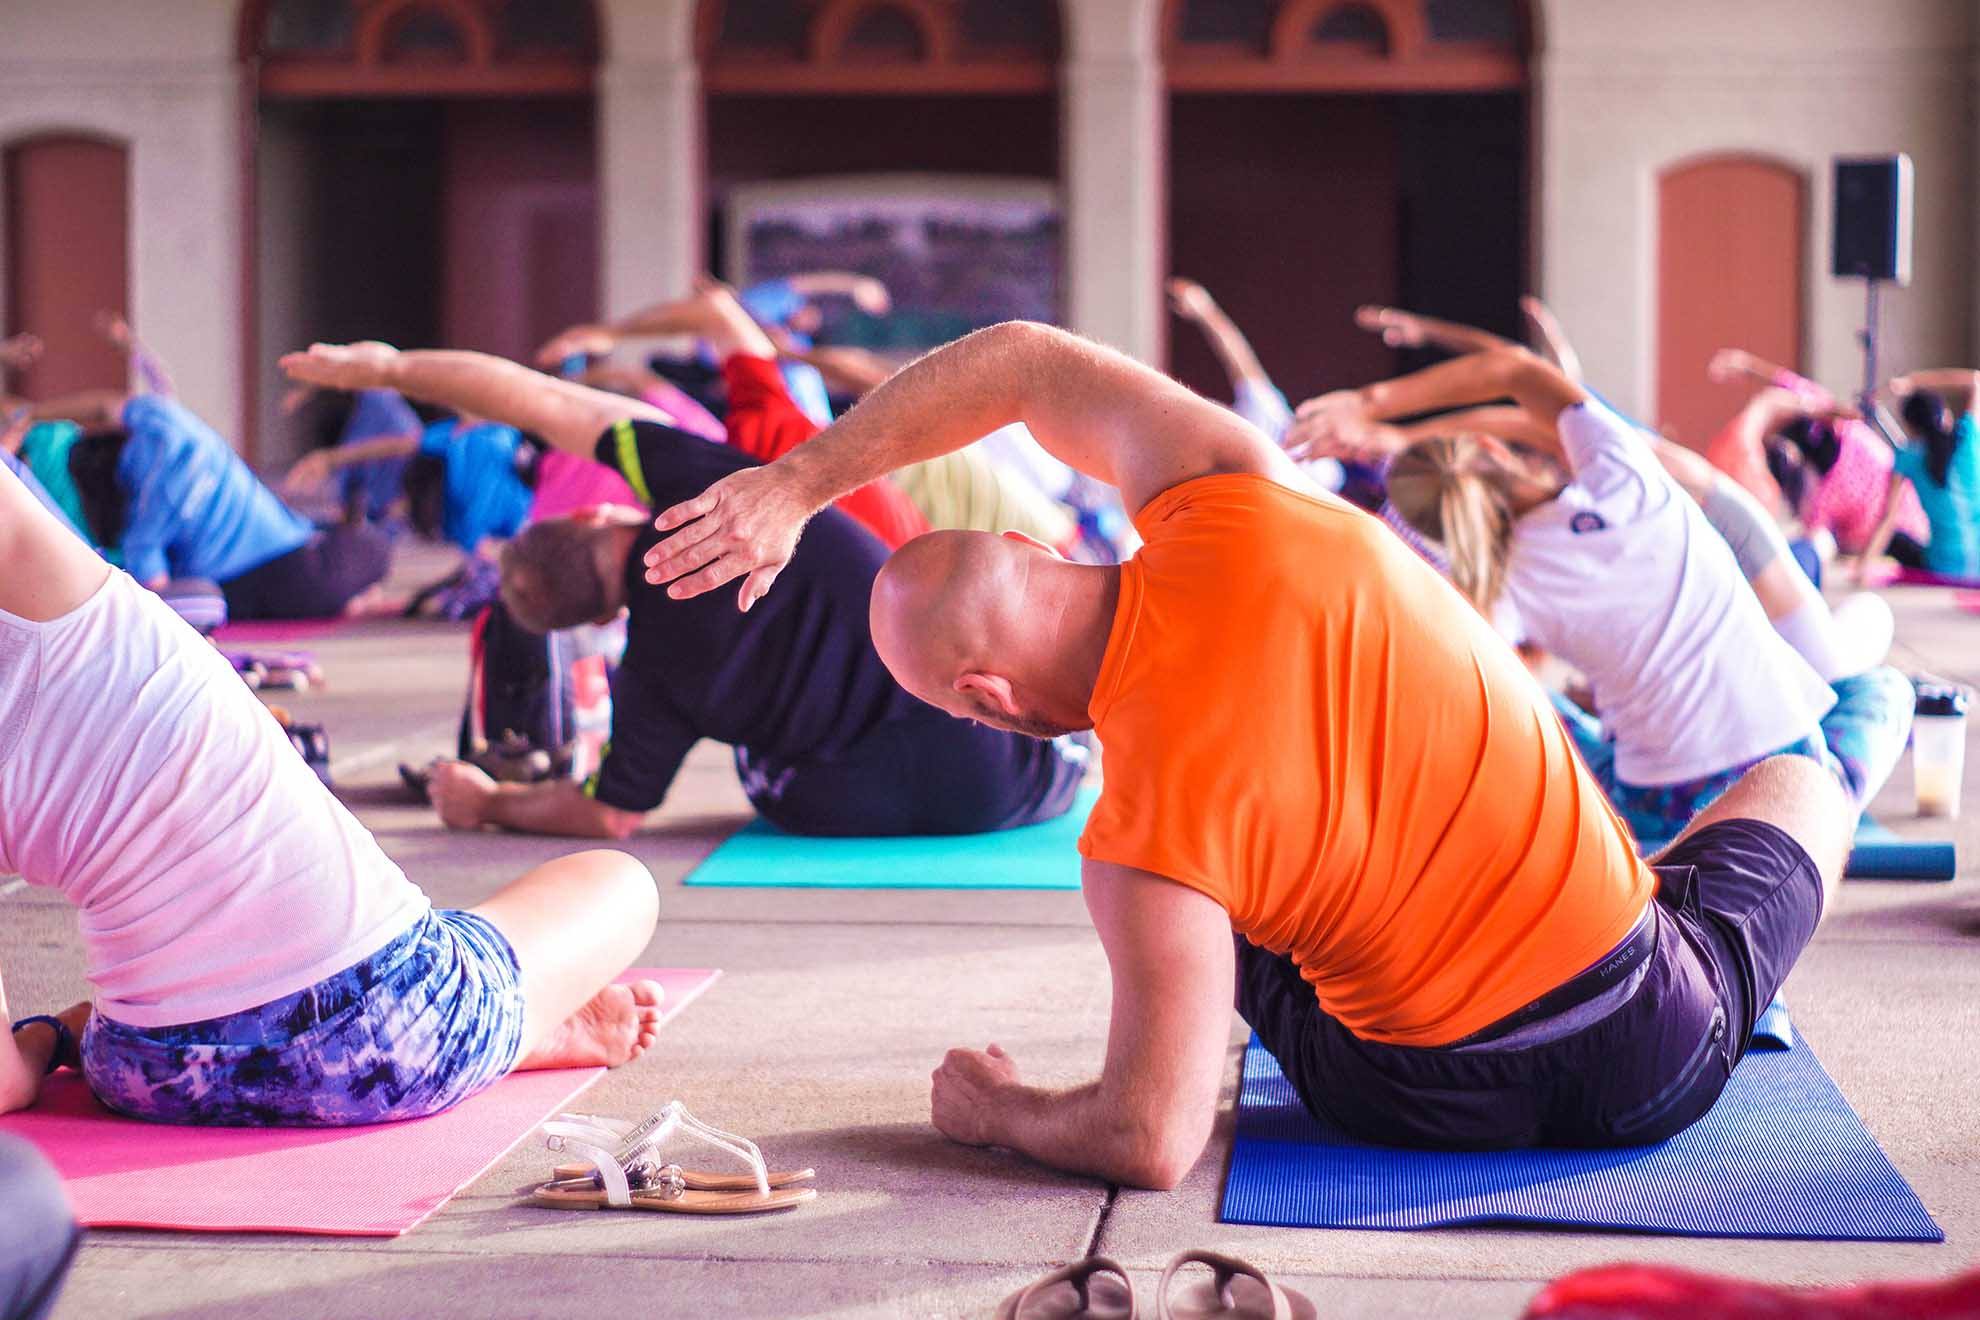 7 Incredible Ways Yoga Changes Lives